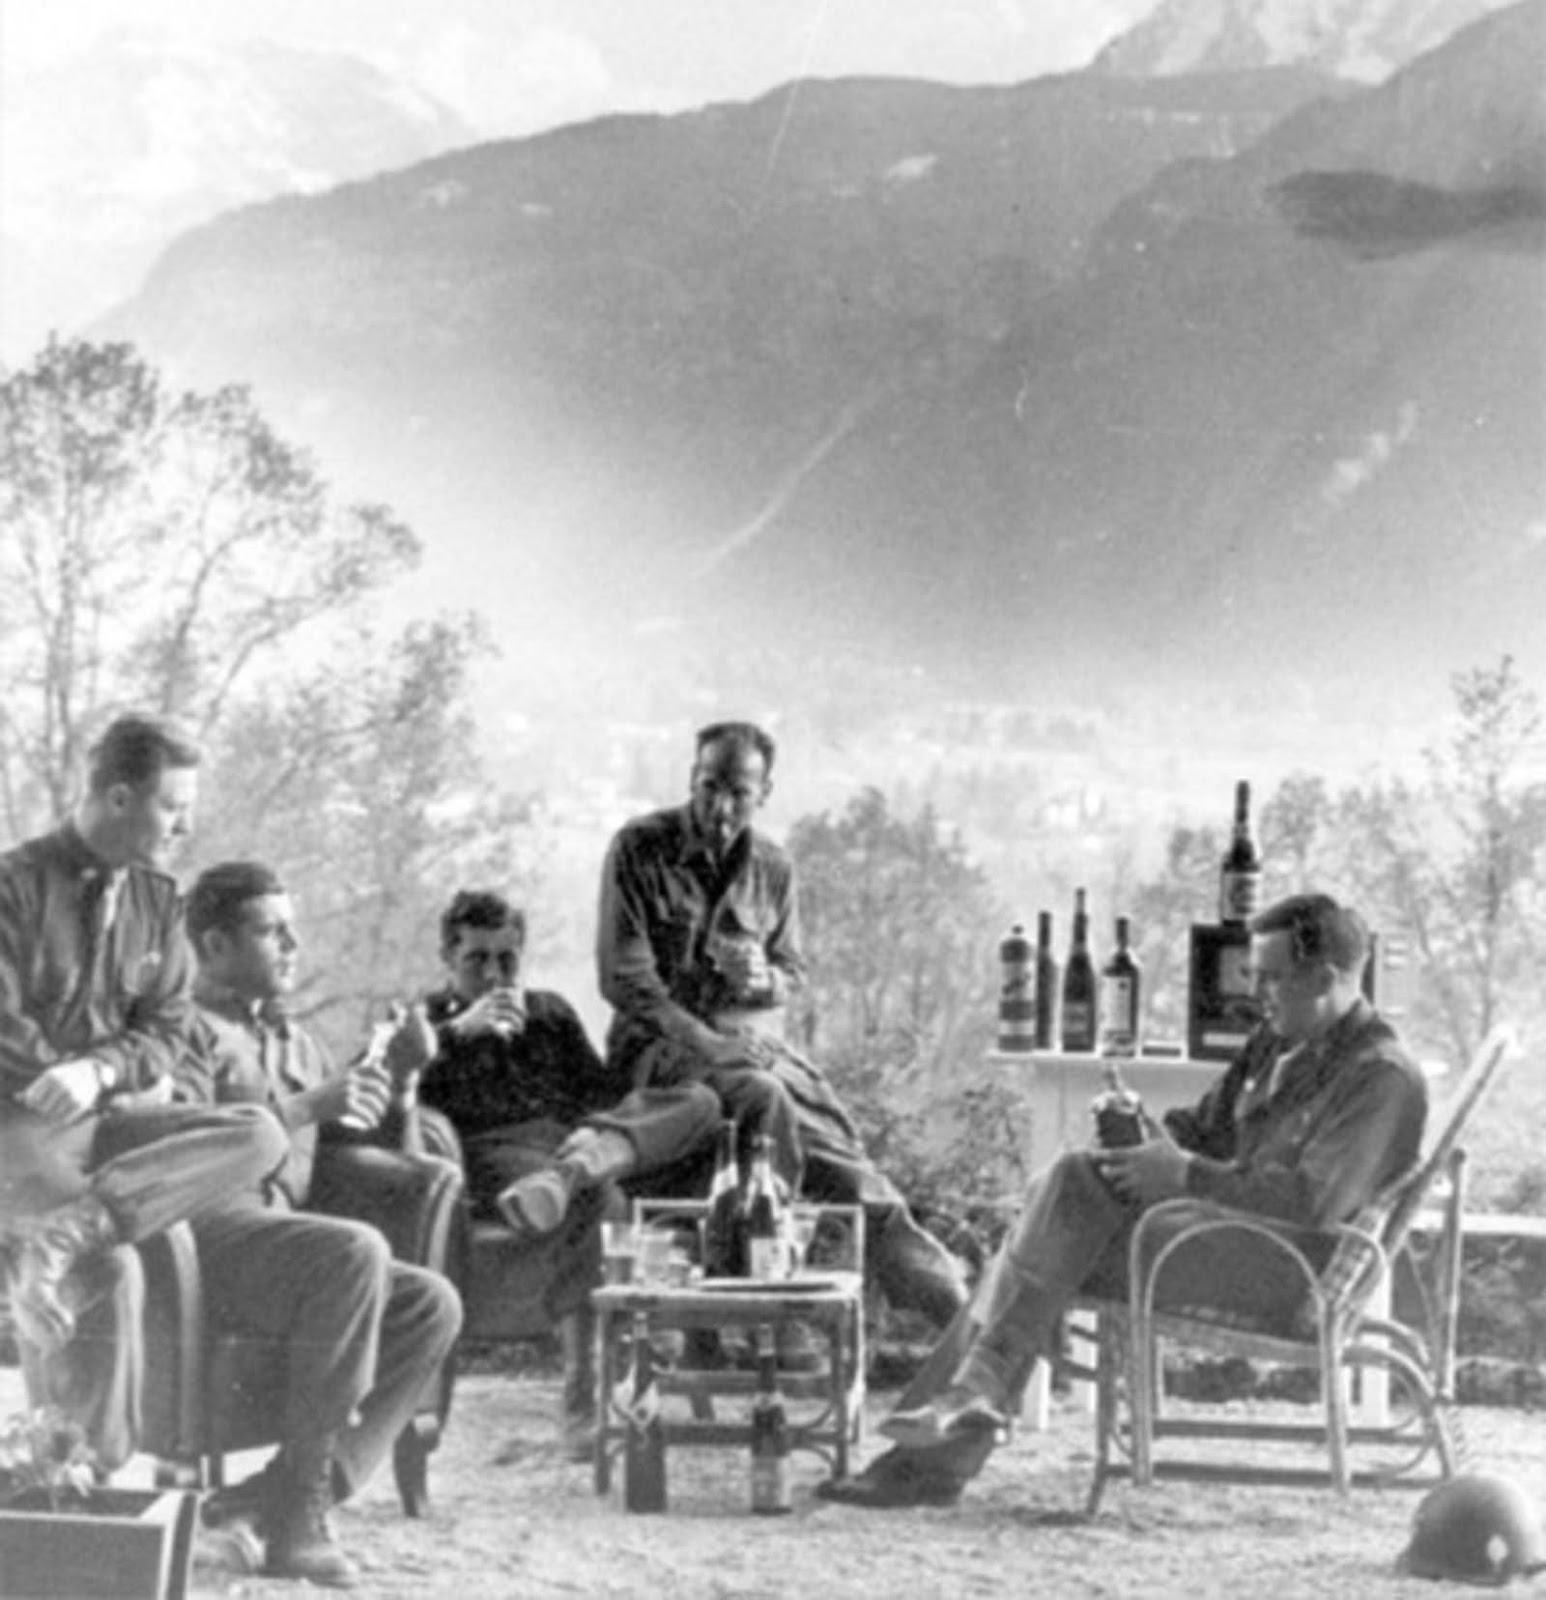 (L to R) Major Winters, Lewis Nixon, Harry Welsh, and two other battalion staff members, celebrating VE-Day in Berchtesgaden, Germany.